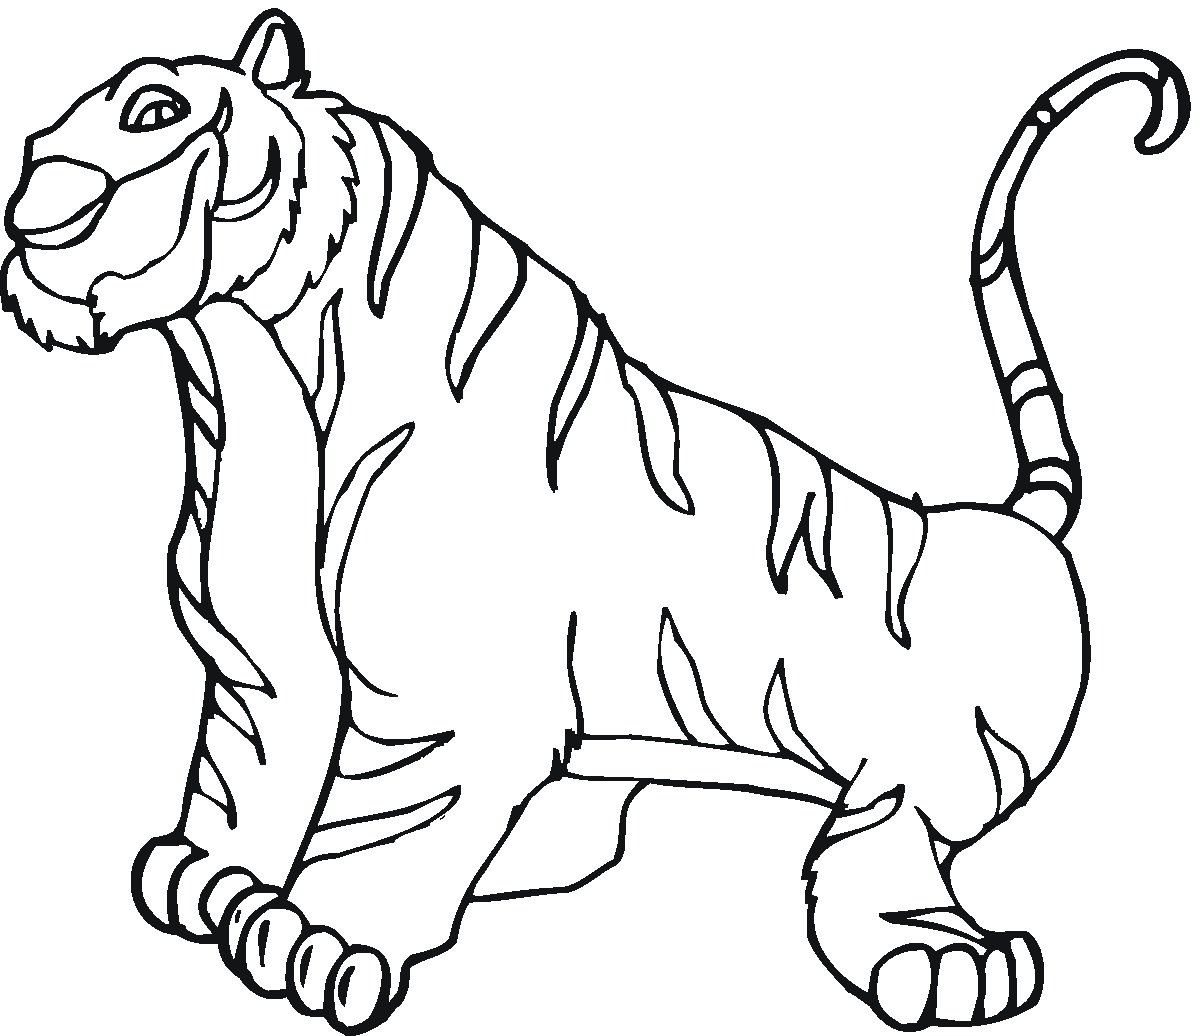 Coloring Pages Tiger Cubs - Coloring Home | 1036x1200